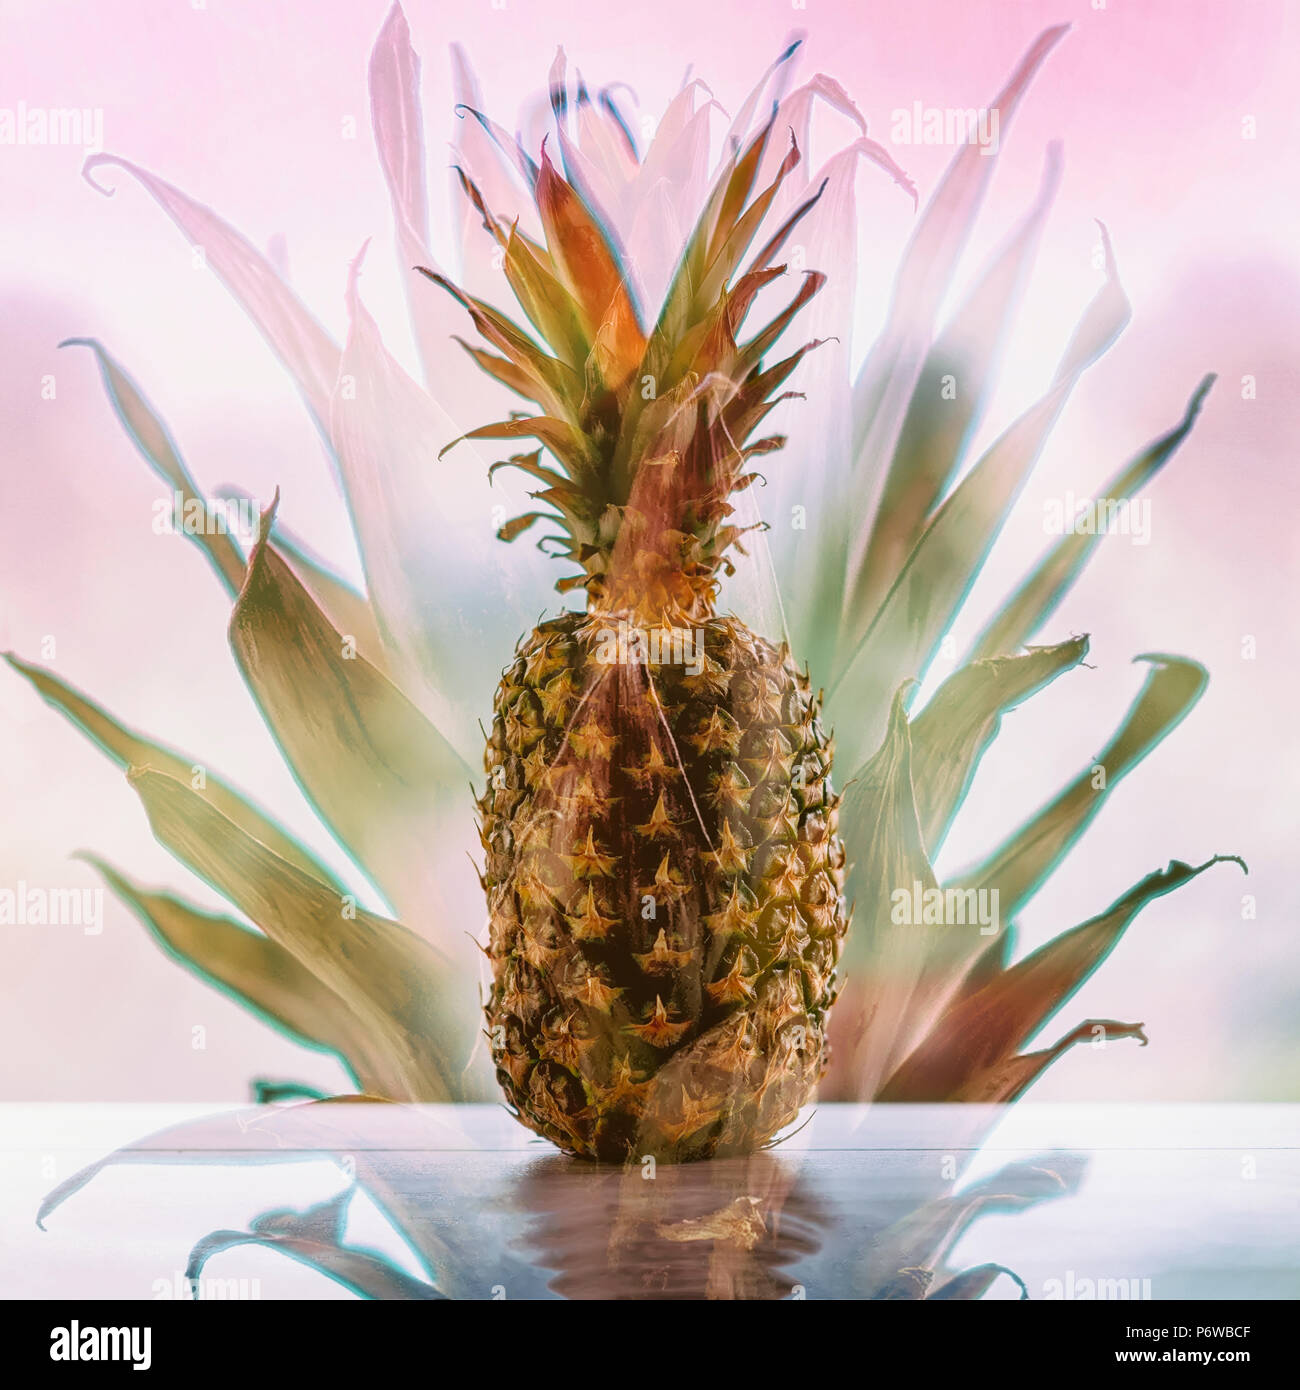 Pineapple On Wooden Table On Abstract Pink Background Tropic